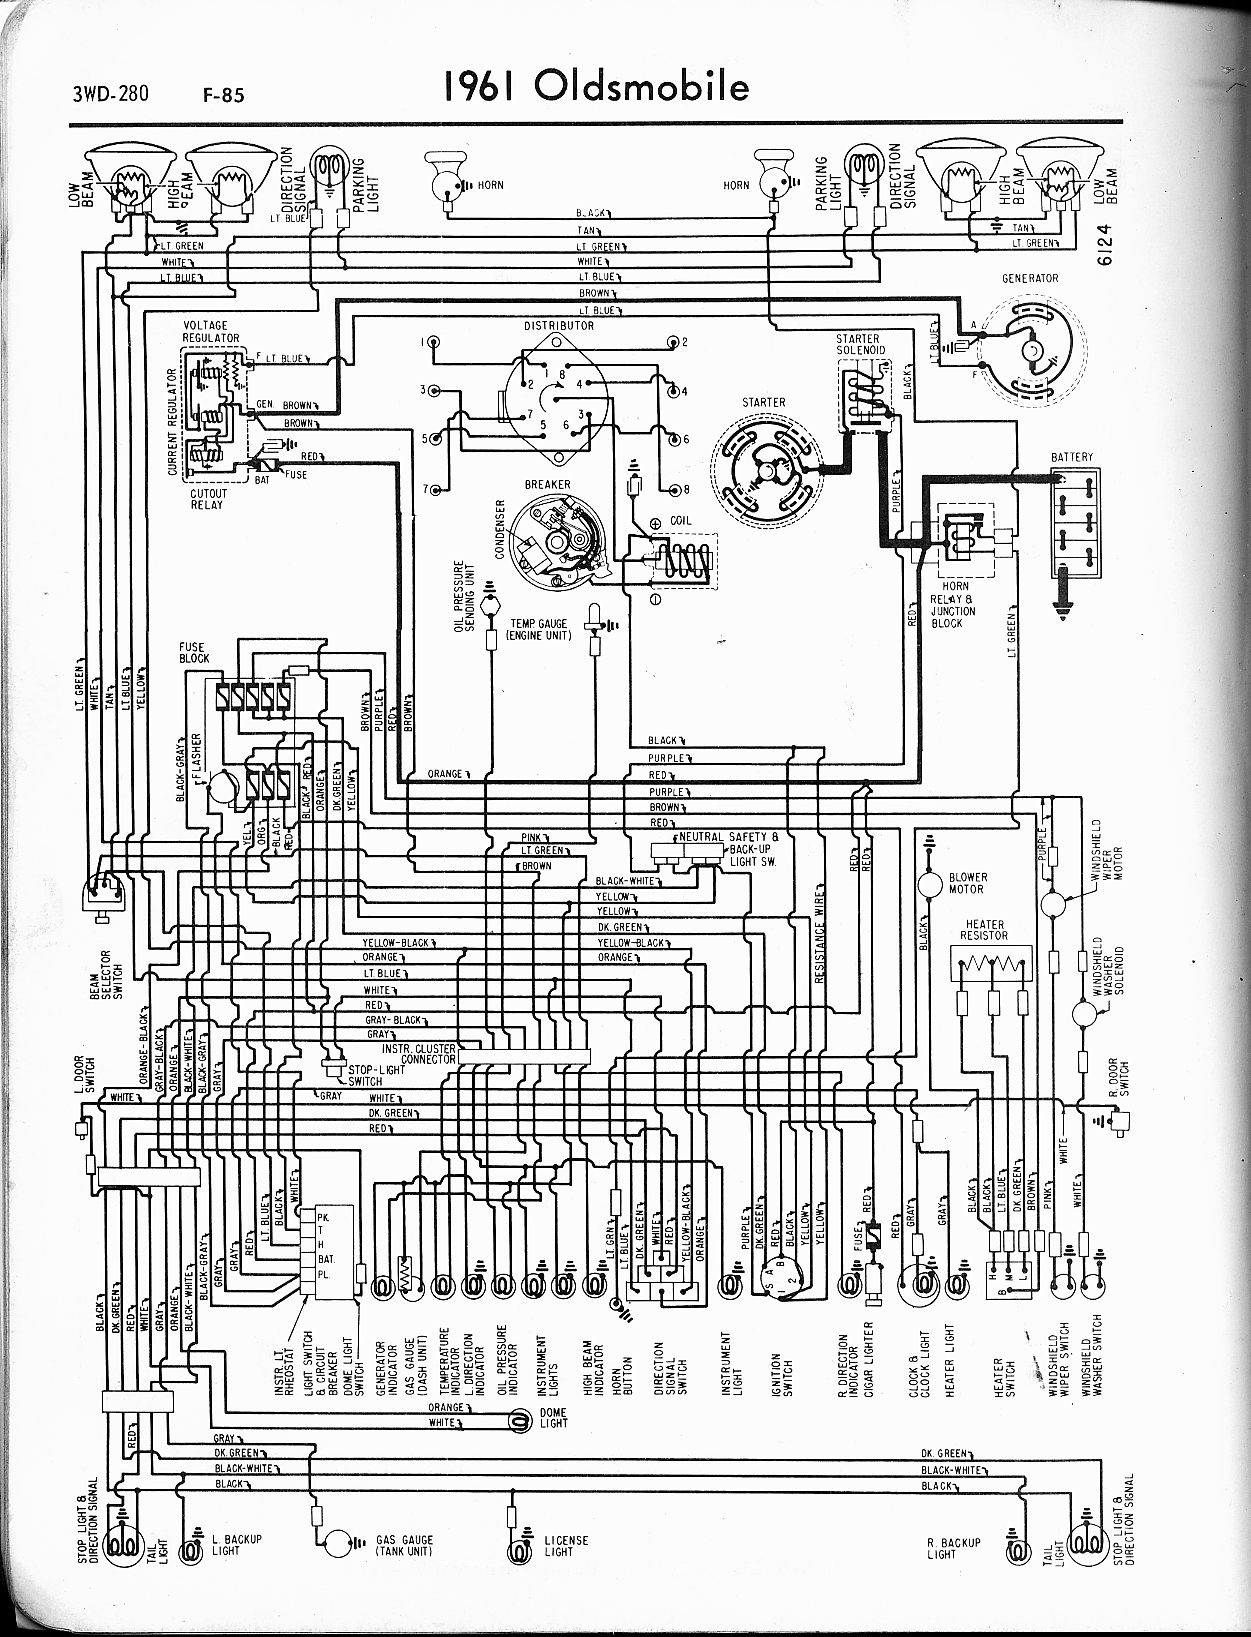 oldsmobile wiring schematics wiring diagrams rh boltsoft net Dodge Dakota Electrical Schematic Dodge Electrical Schematics